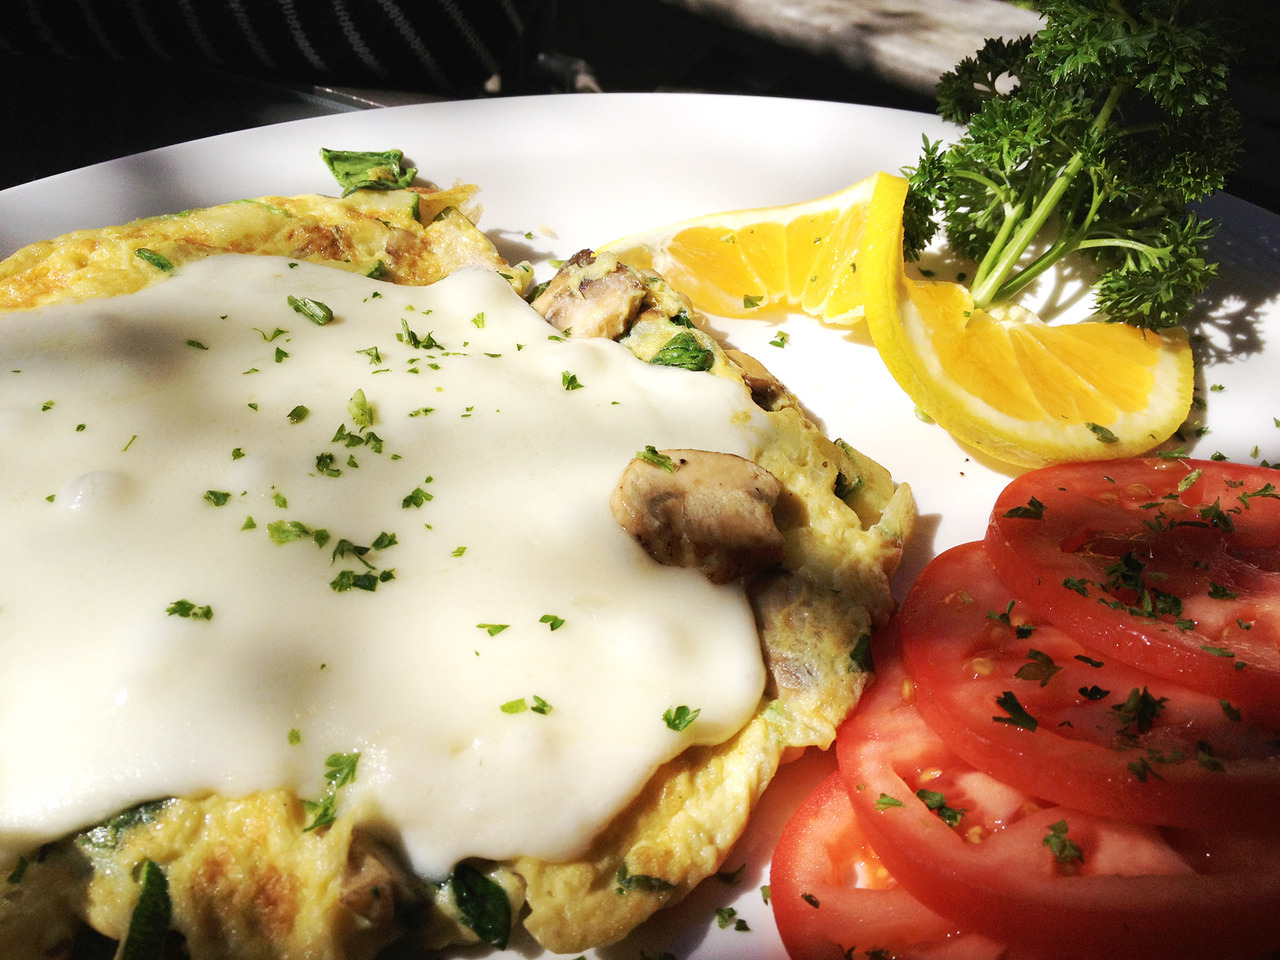 Rise and shine! Veggie omelet to the rescue. -Braised Bombshell